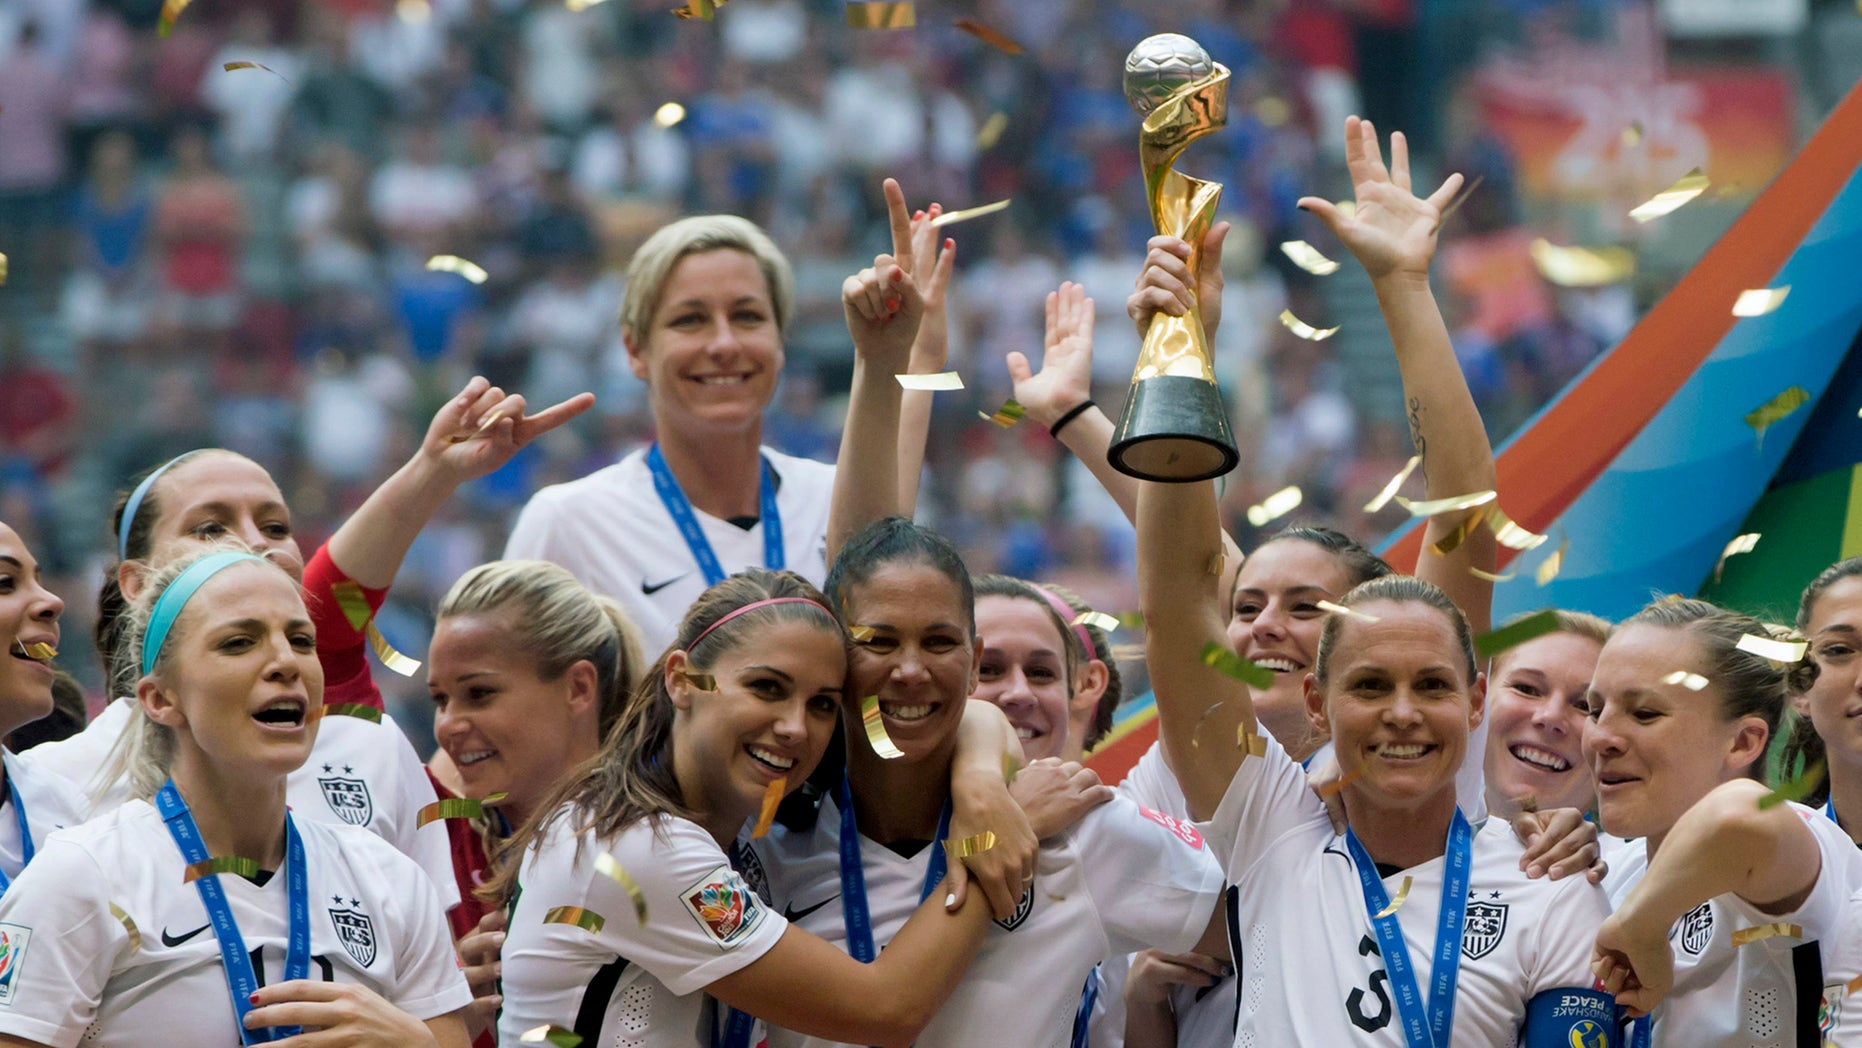 The United States Women's National Team celebrates with the trophy after they defeated Japan 5-2 in the FIFA Women's World Cup soccer championship in Vancouver, British Columbia, Canada, Sunday, July 5, 2015. (Darryl Dyck/The Canadian Press via AP) MANDATORY CREDIT